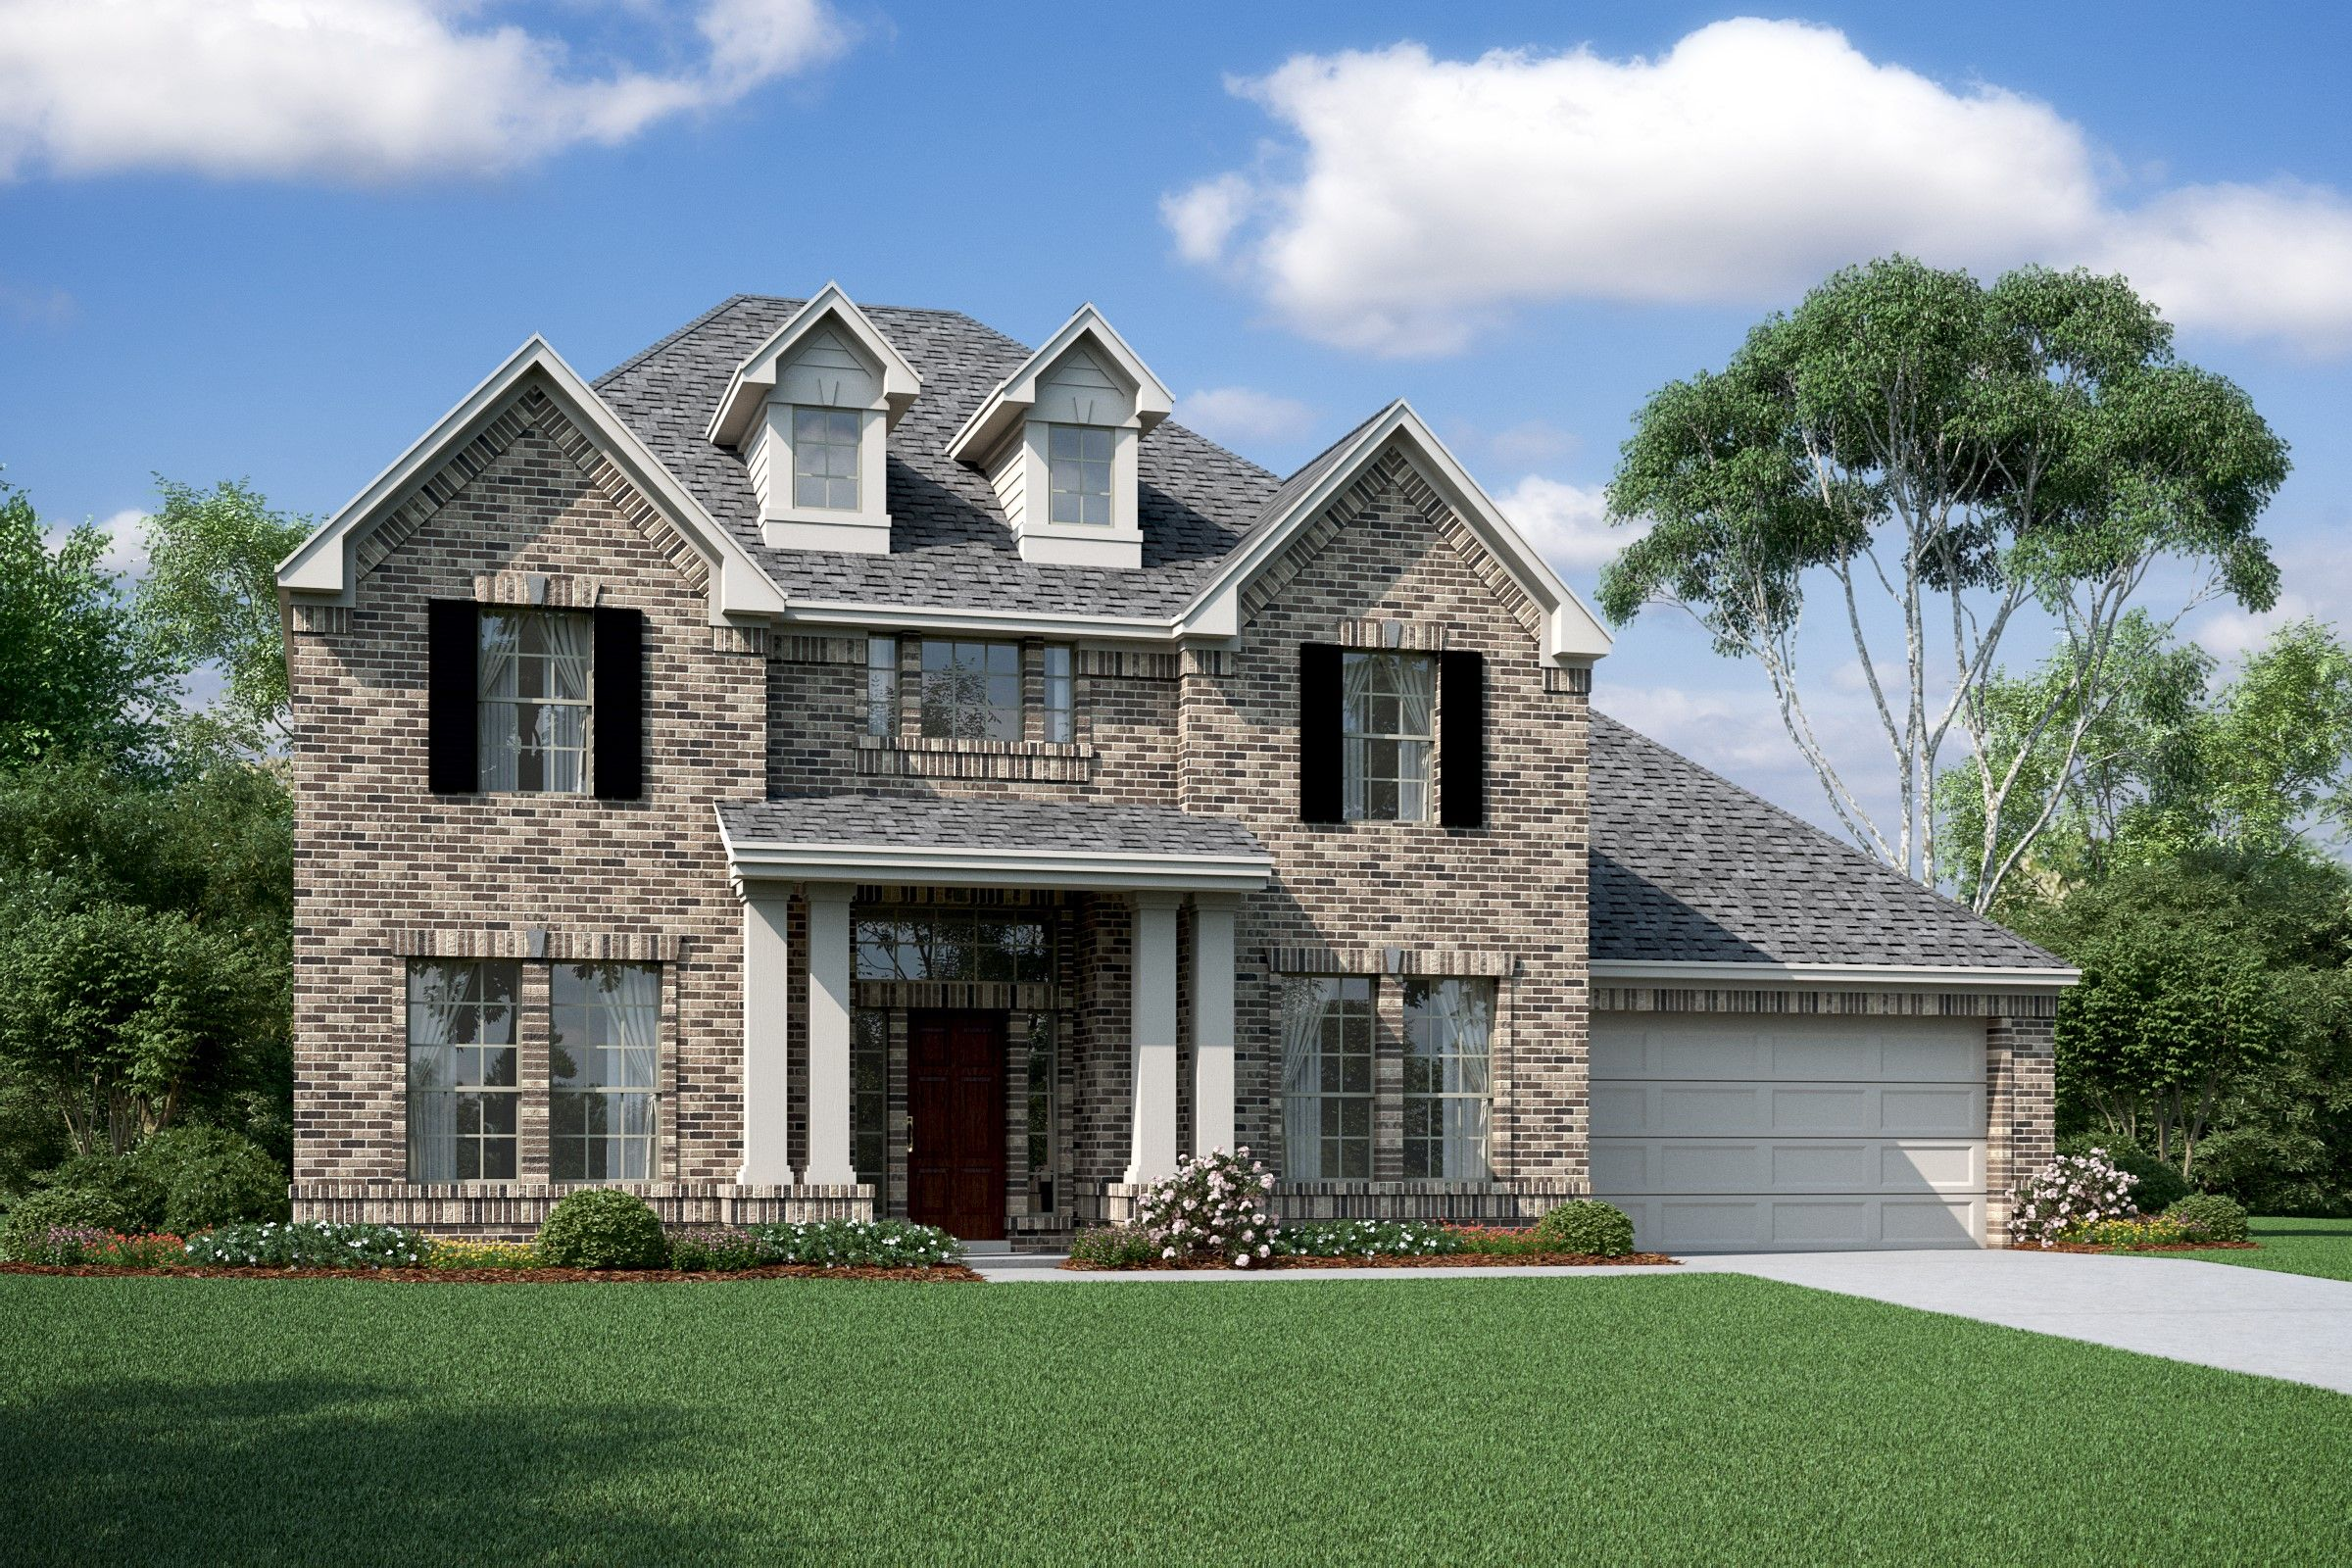 Single Family for Sale at Louise 4417 Braunig Lake Drive, Homesite 1 Dickinson, Texas 77539 United States